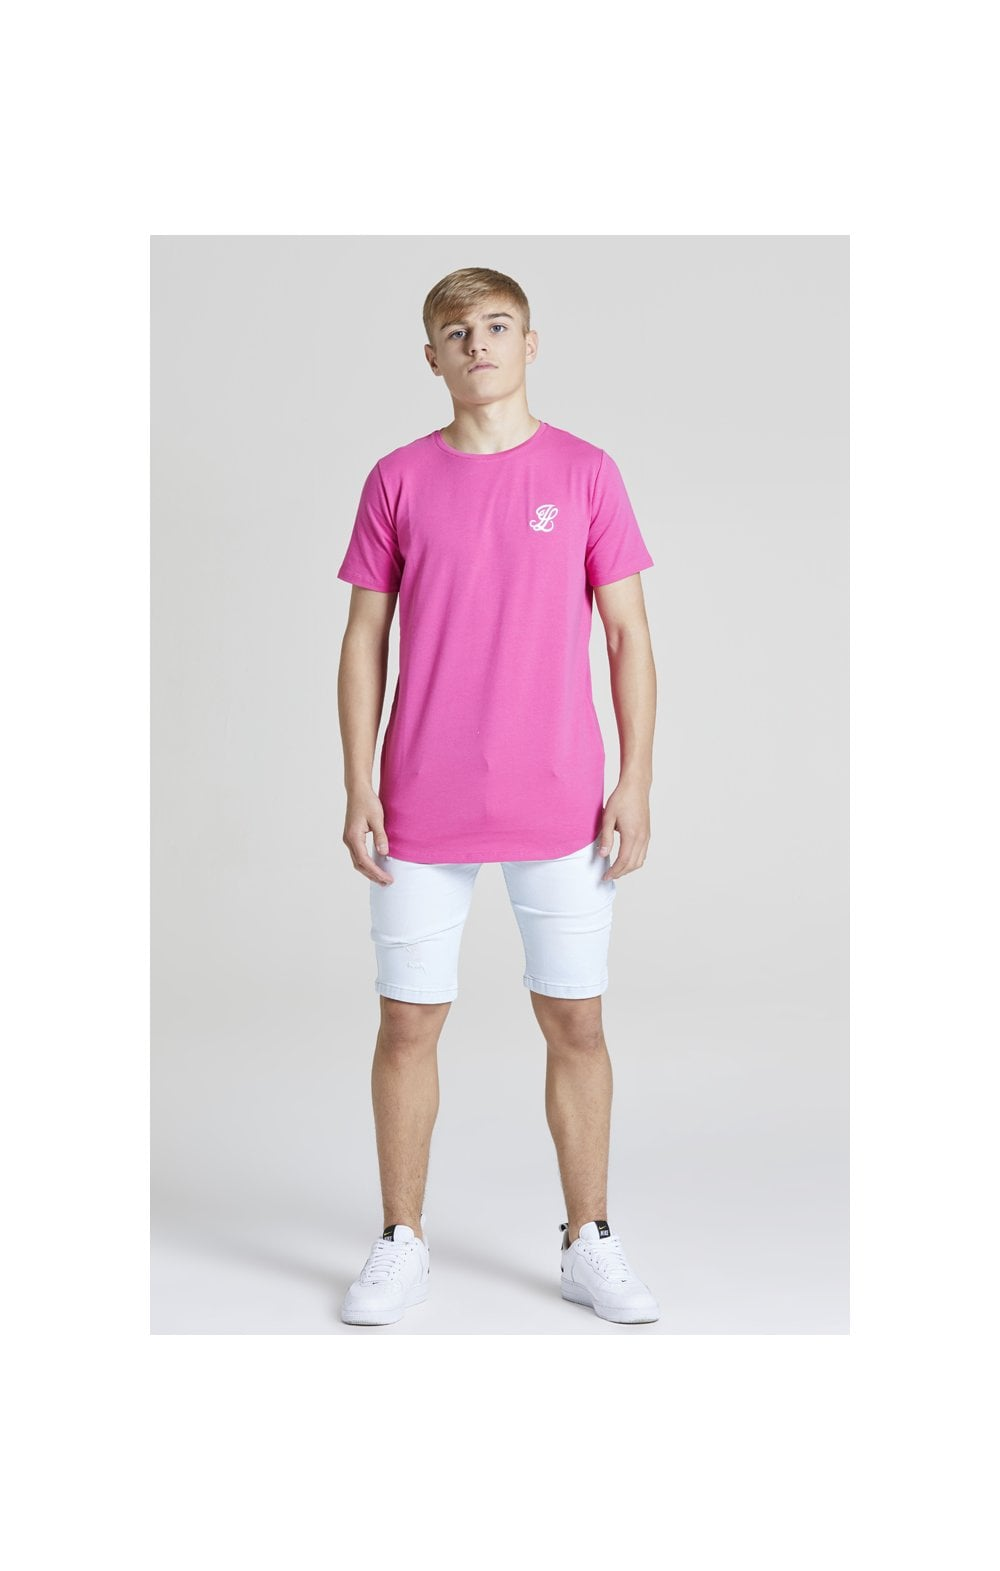 Illusive London Core Tee - Pink (1)